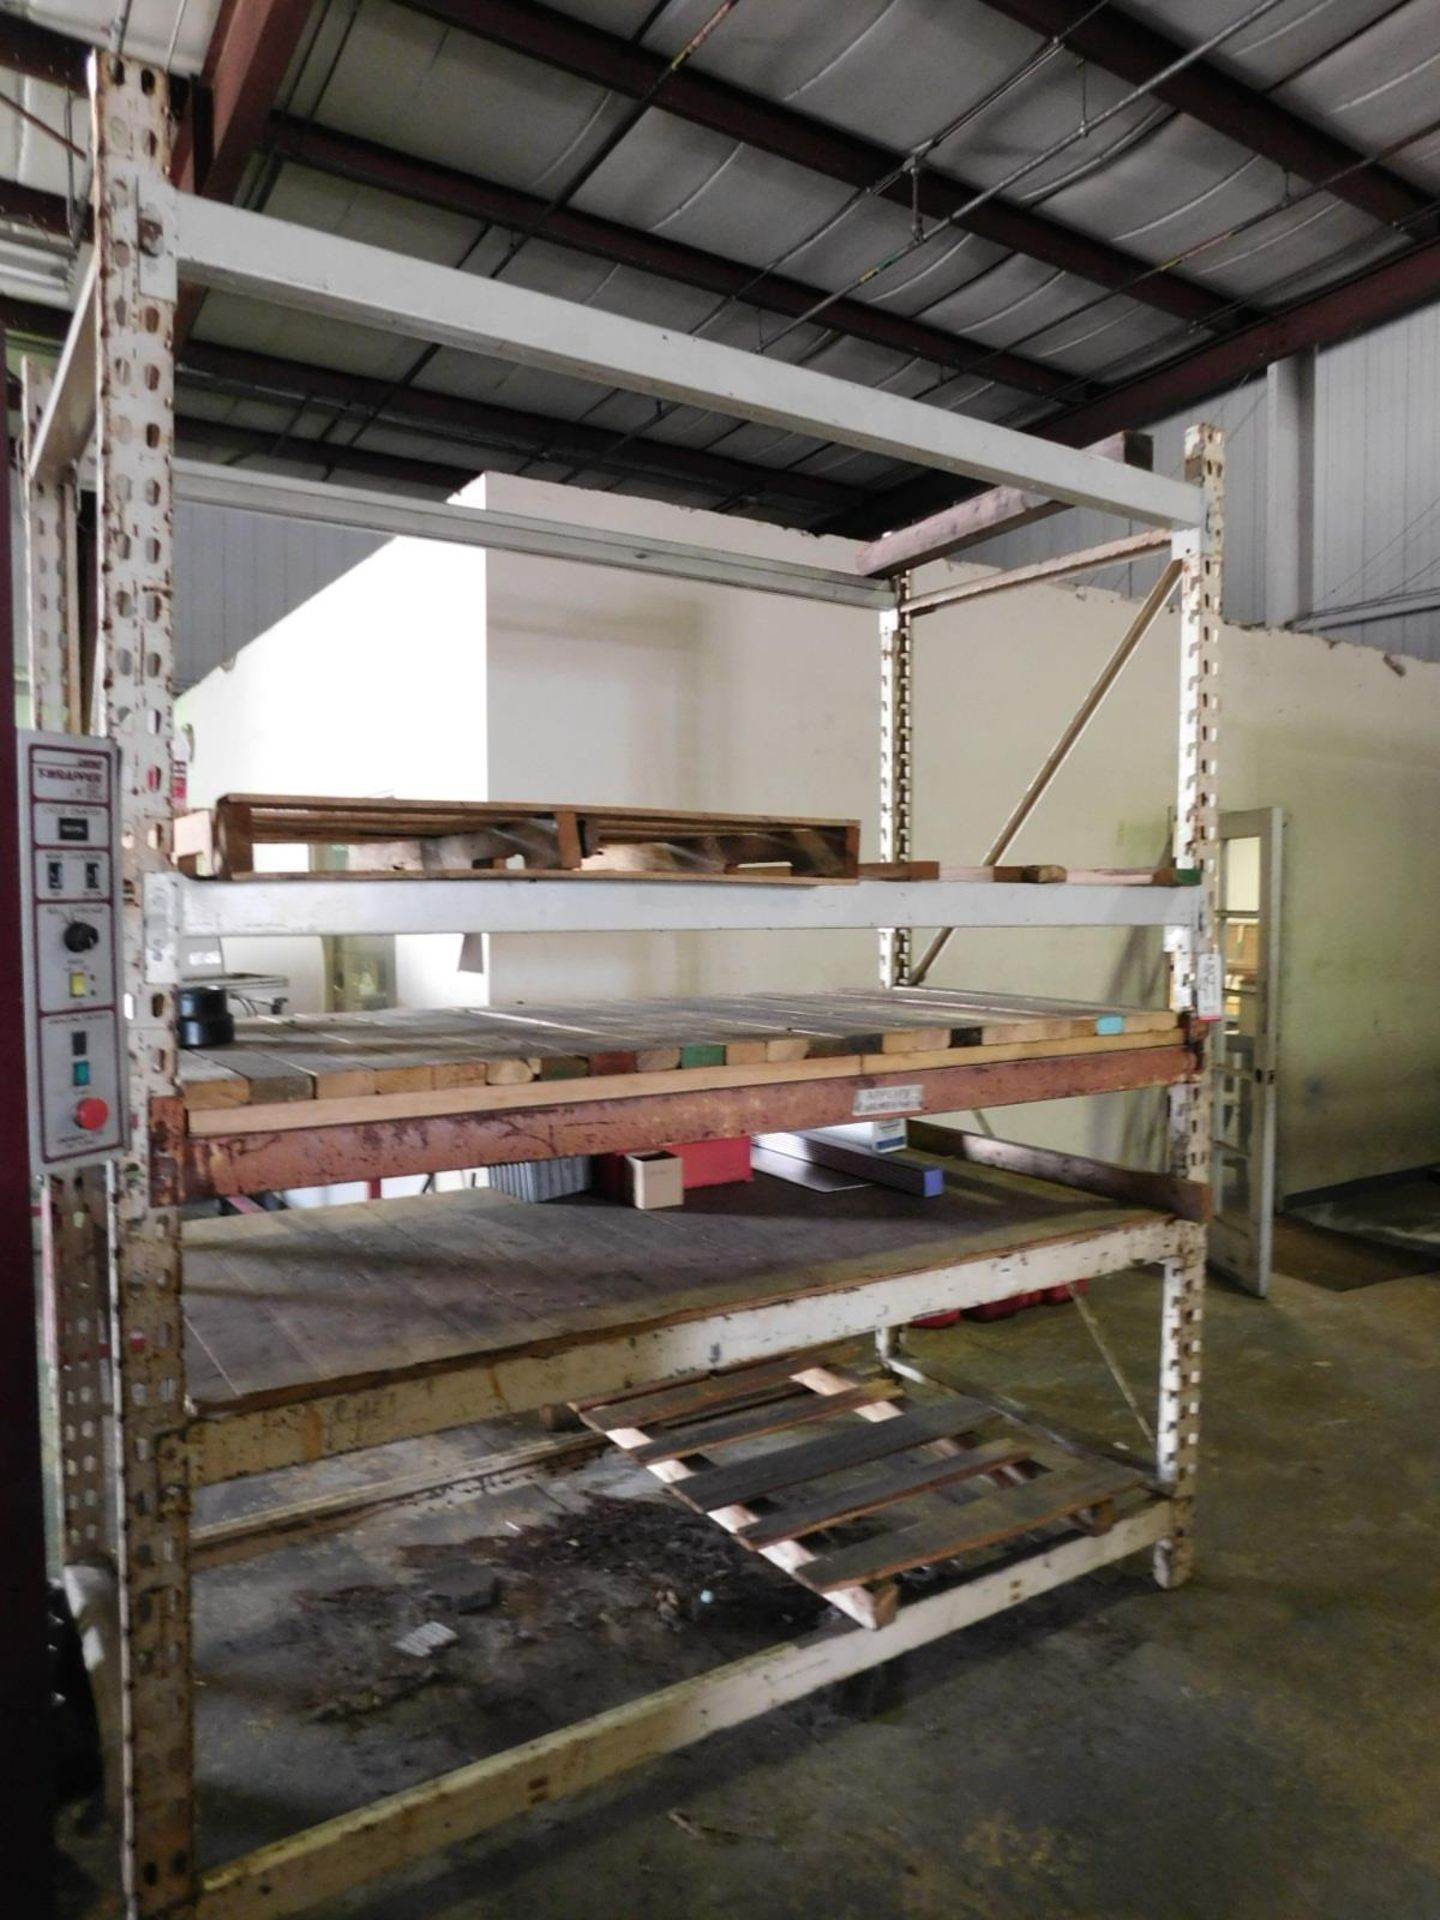 Lot 49 - PALLET RACK, 7' BEAMS, 9' UPRIGHTS